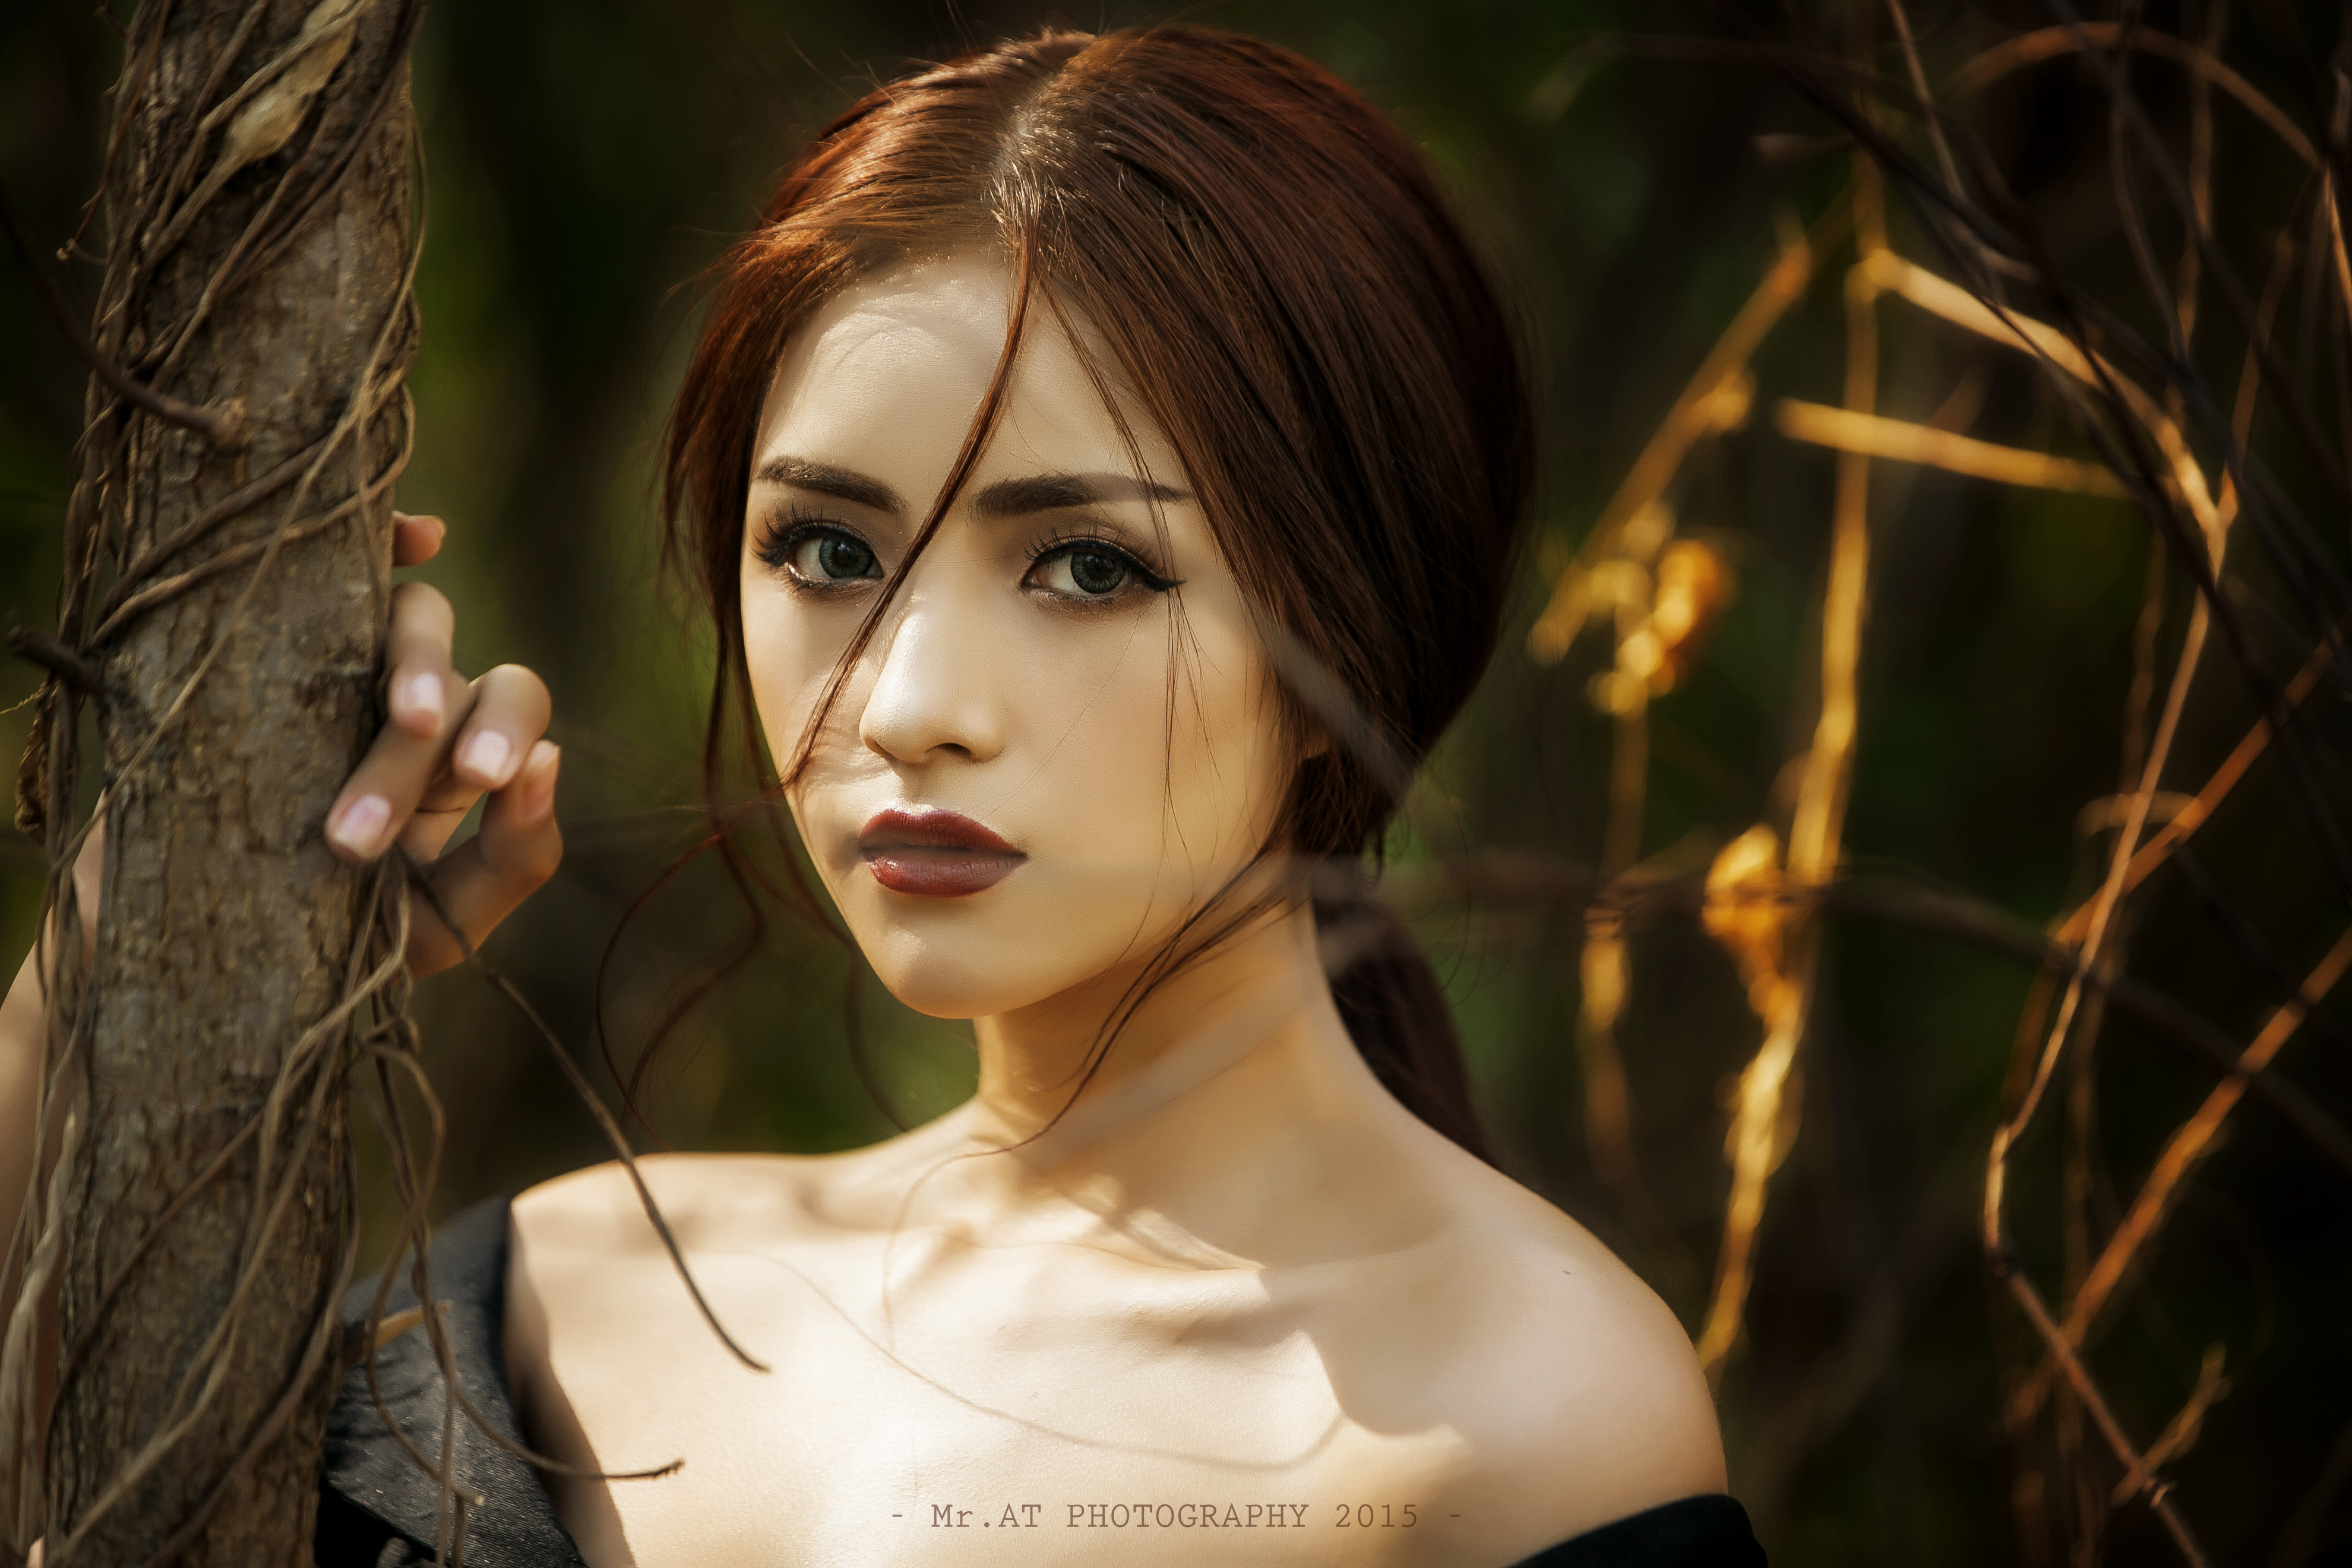 Mai anh quyen hd celebrities 4k wallpapers images backgrounds photos and pictures - Beautiful model wallpaper ...